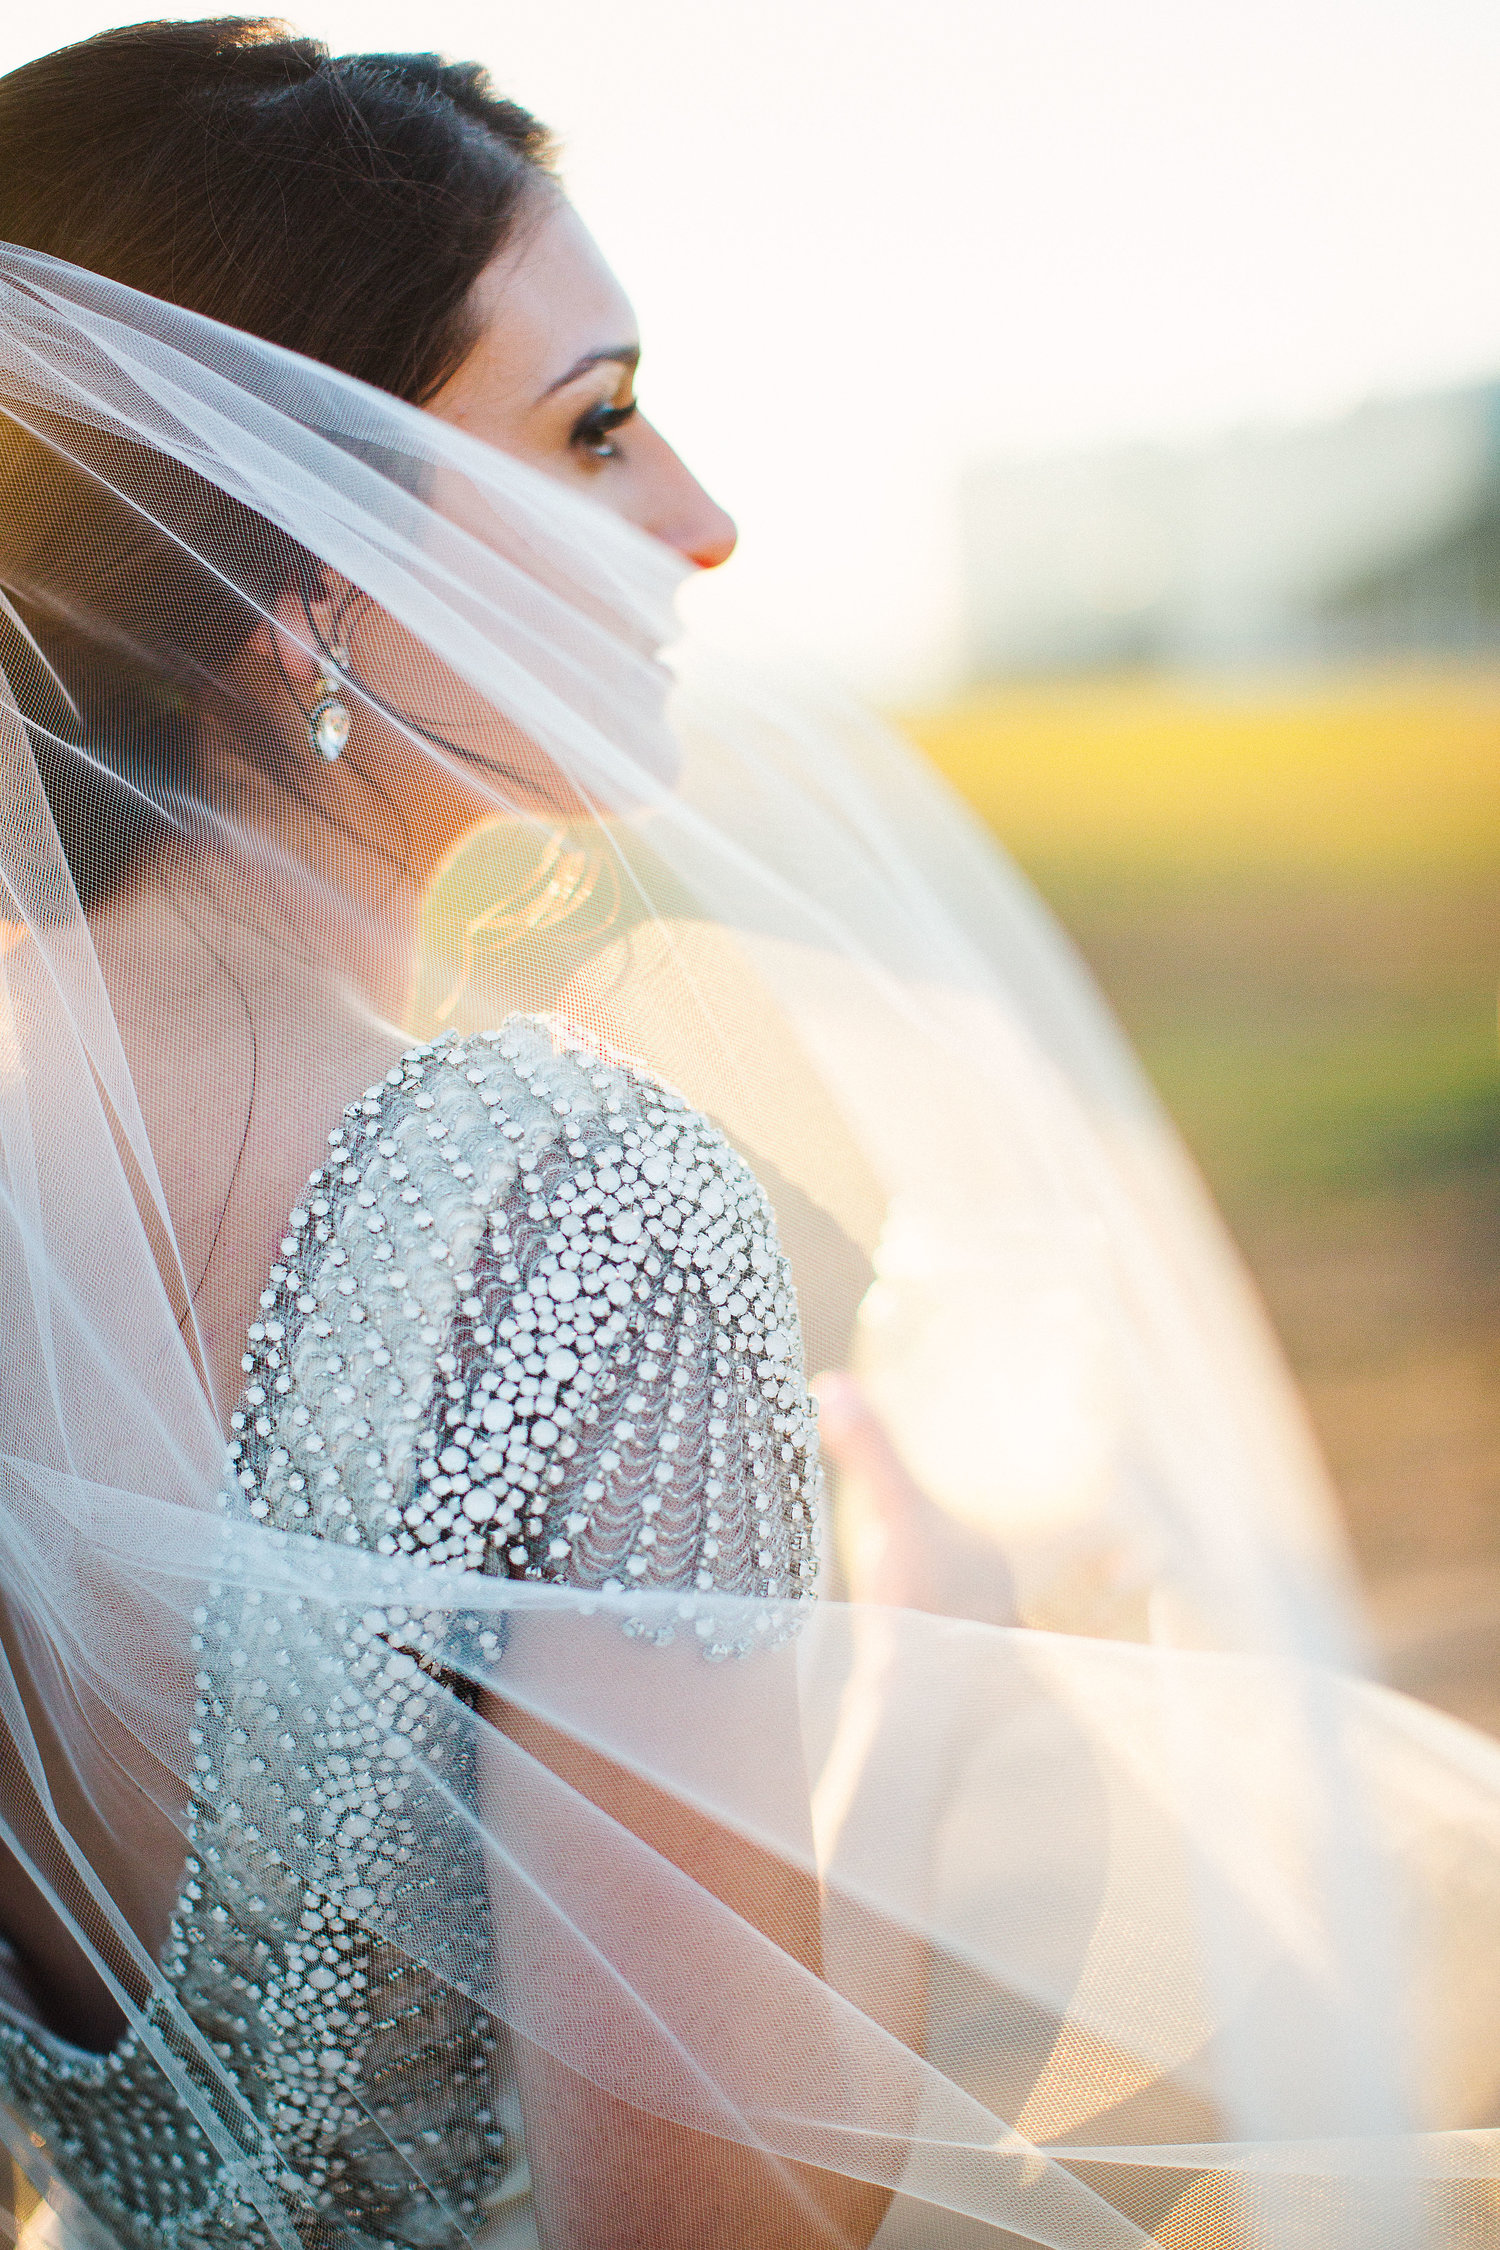 izzy-hudgins-photography-savannah-wedding-ivory-and-beau-bridal-boutique-savannah-wedding-planner-colonial-house-of-flowers-forsyth-park-wedding-old-fort-jackson-wedding-squidwed-films-savannah-boutique-savannah-weddings-56.jpg